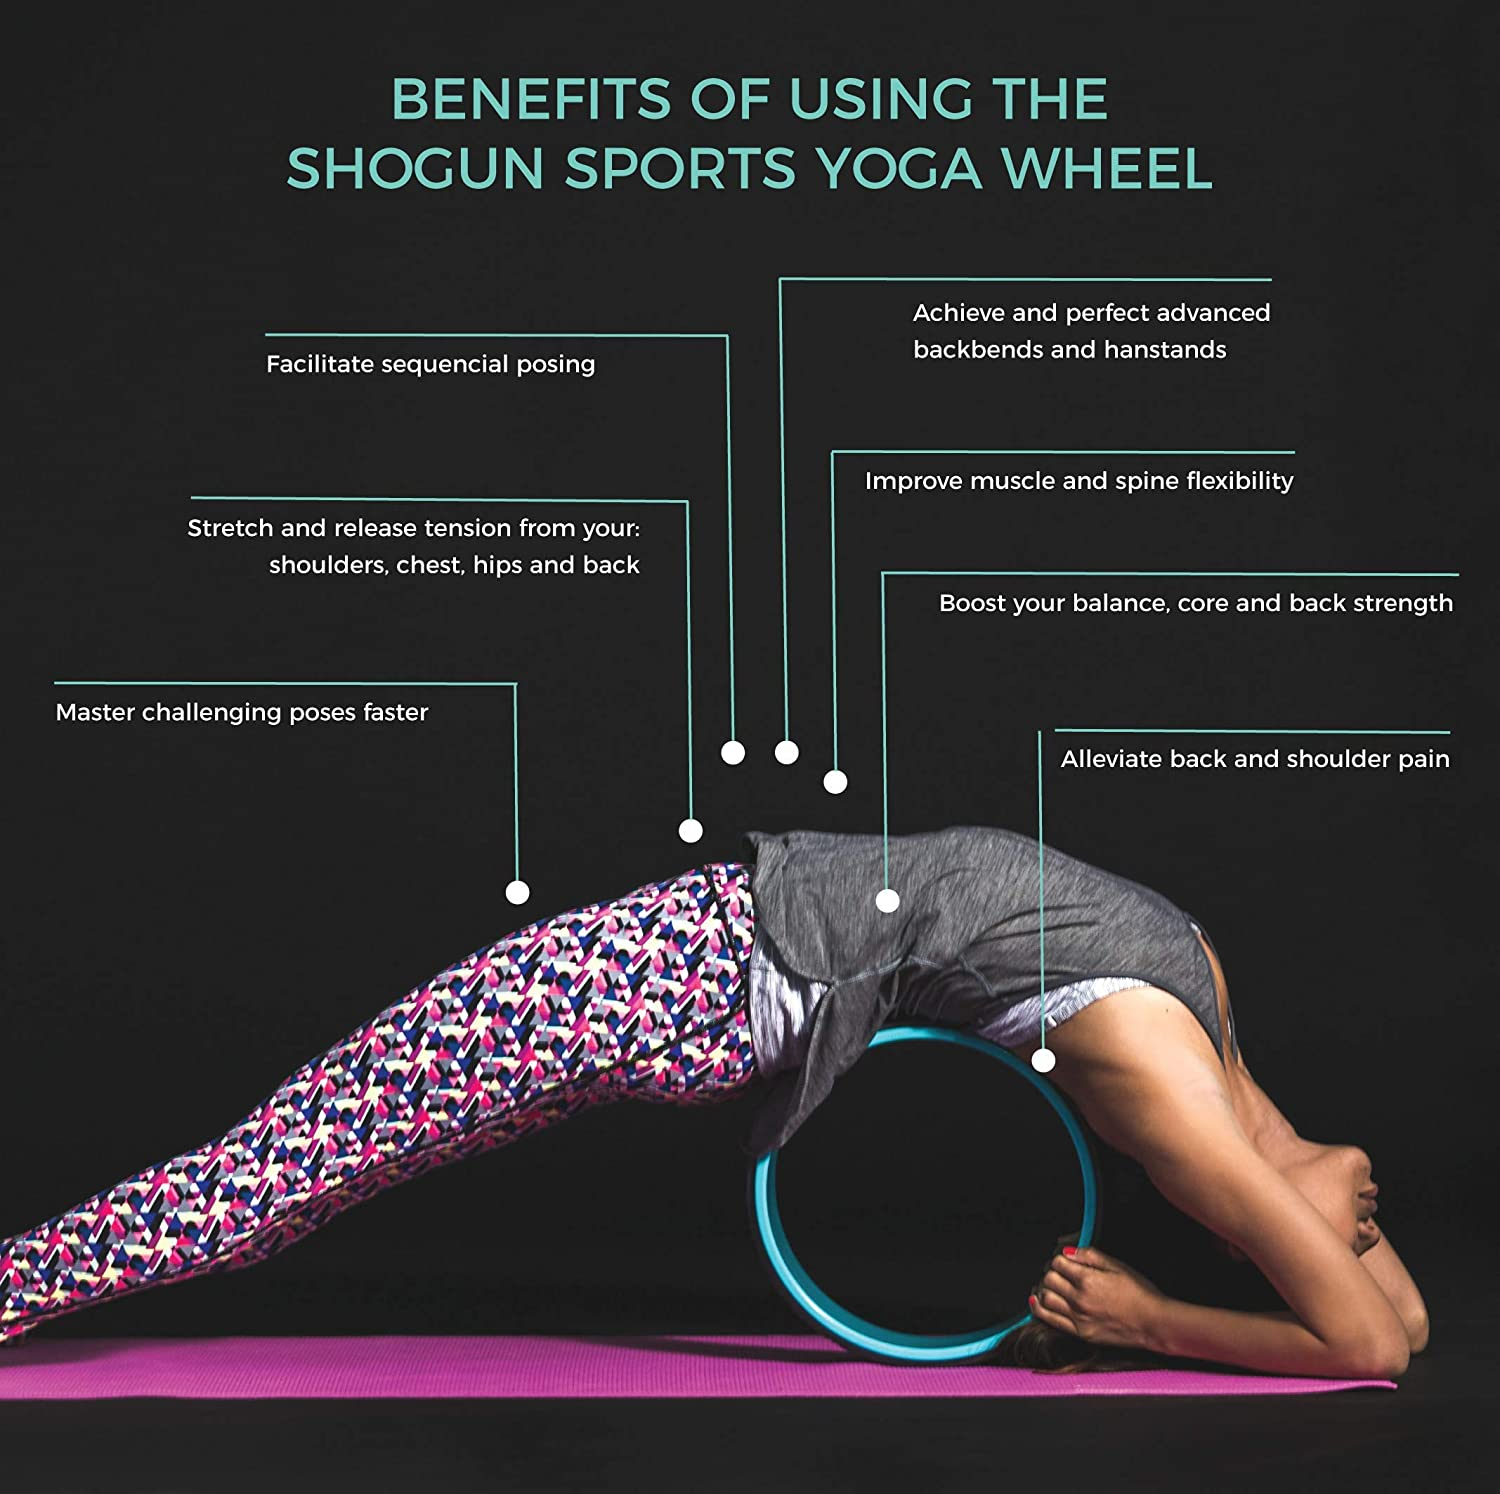 Shogun Sports Yoga Wheel. Yoga Wheel Roller for Back Pain, Stretching, Improving Flexibility and Backbends.